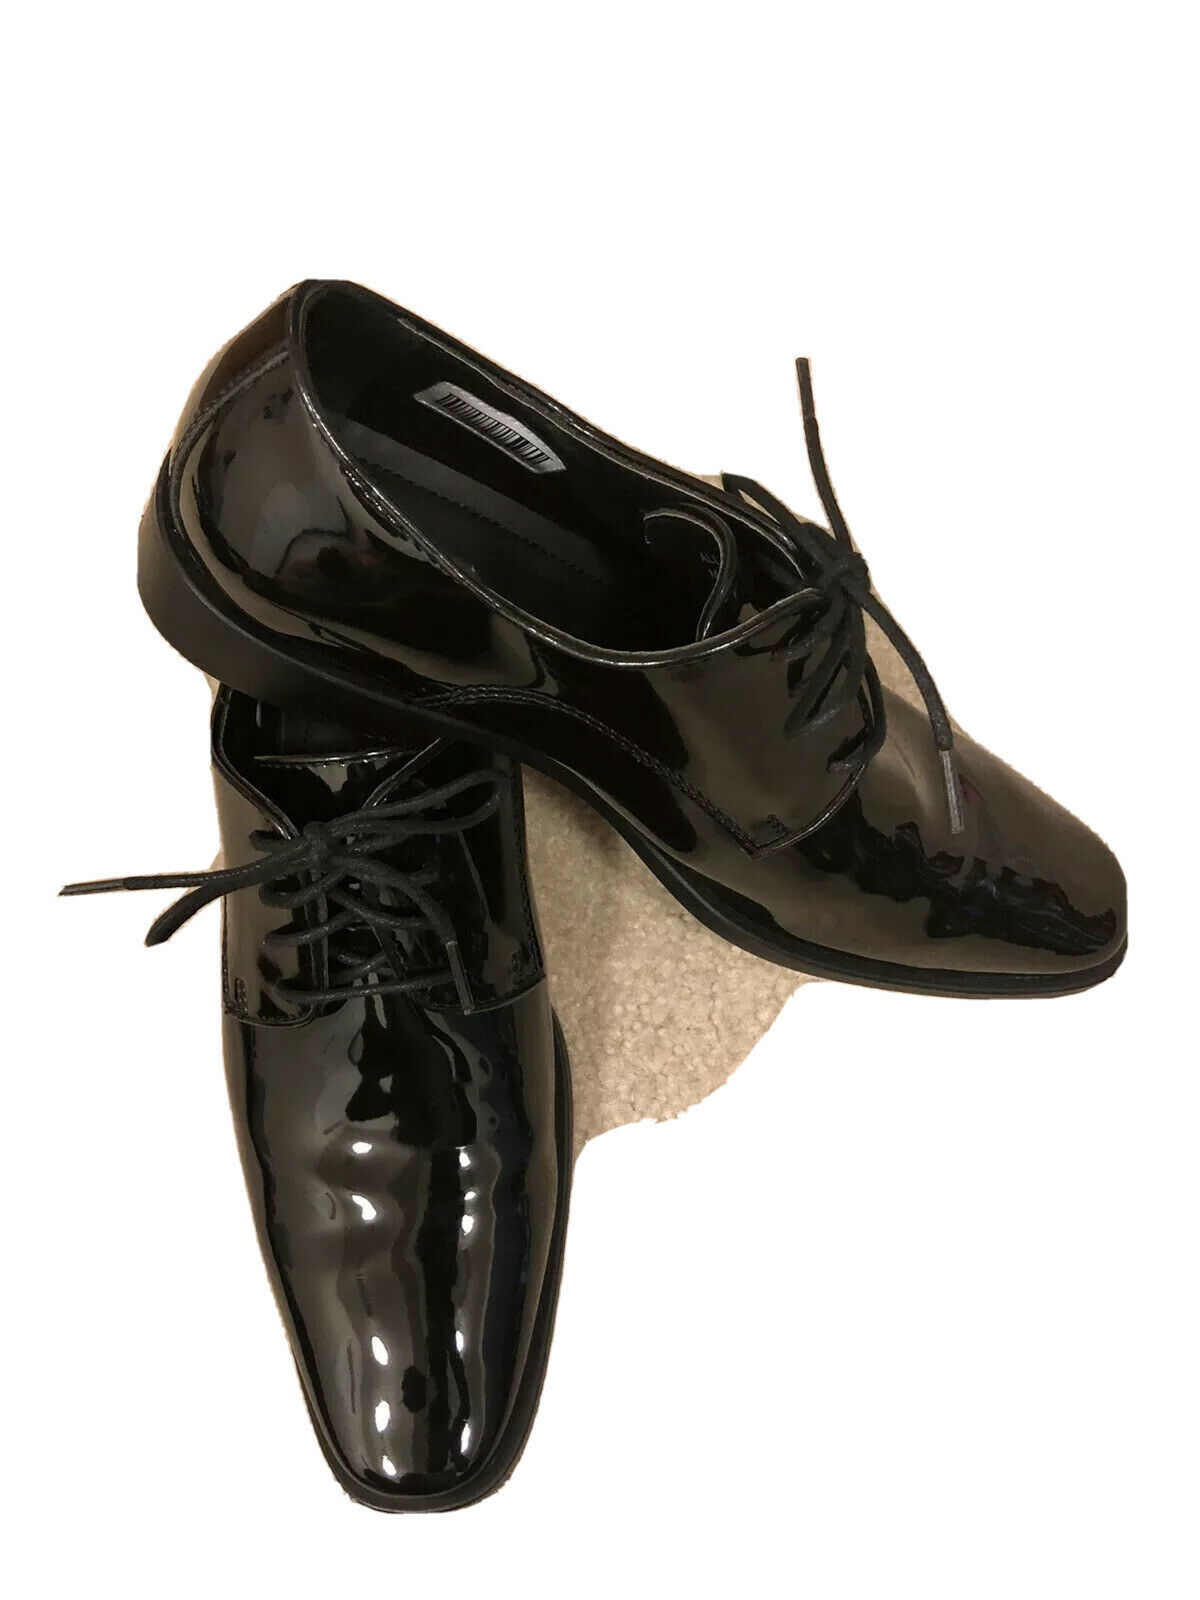 Joseph Abboud Men Tuxedo Dress Lace Up Shoe Size 10.5W. Very Clean And Nice.